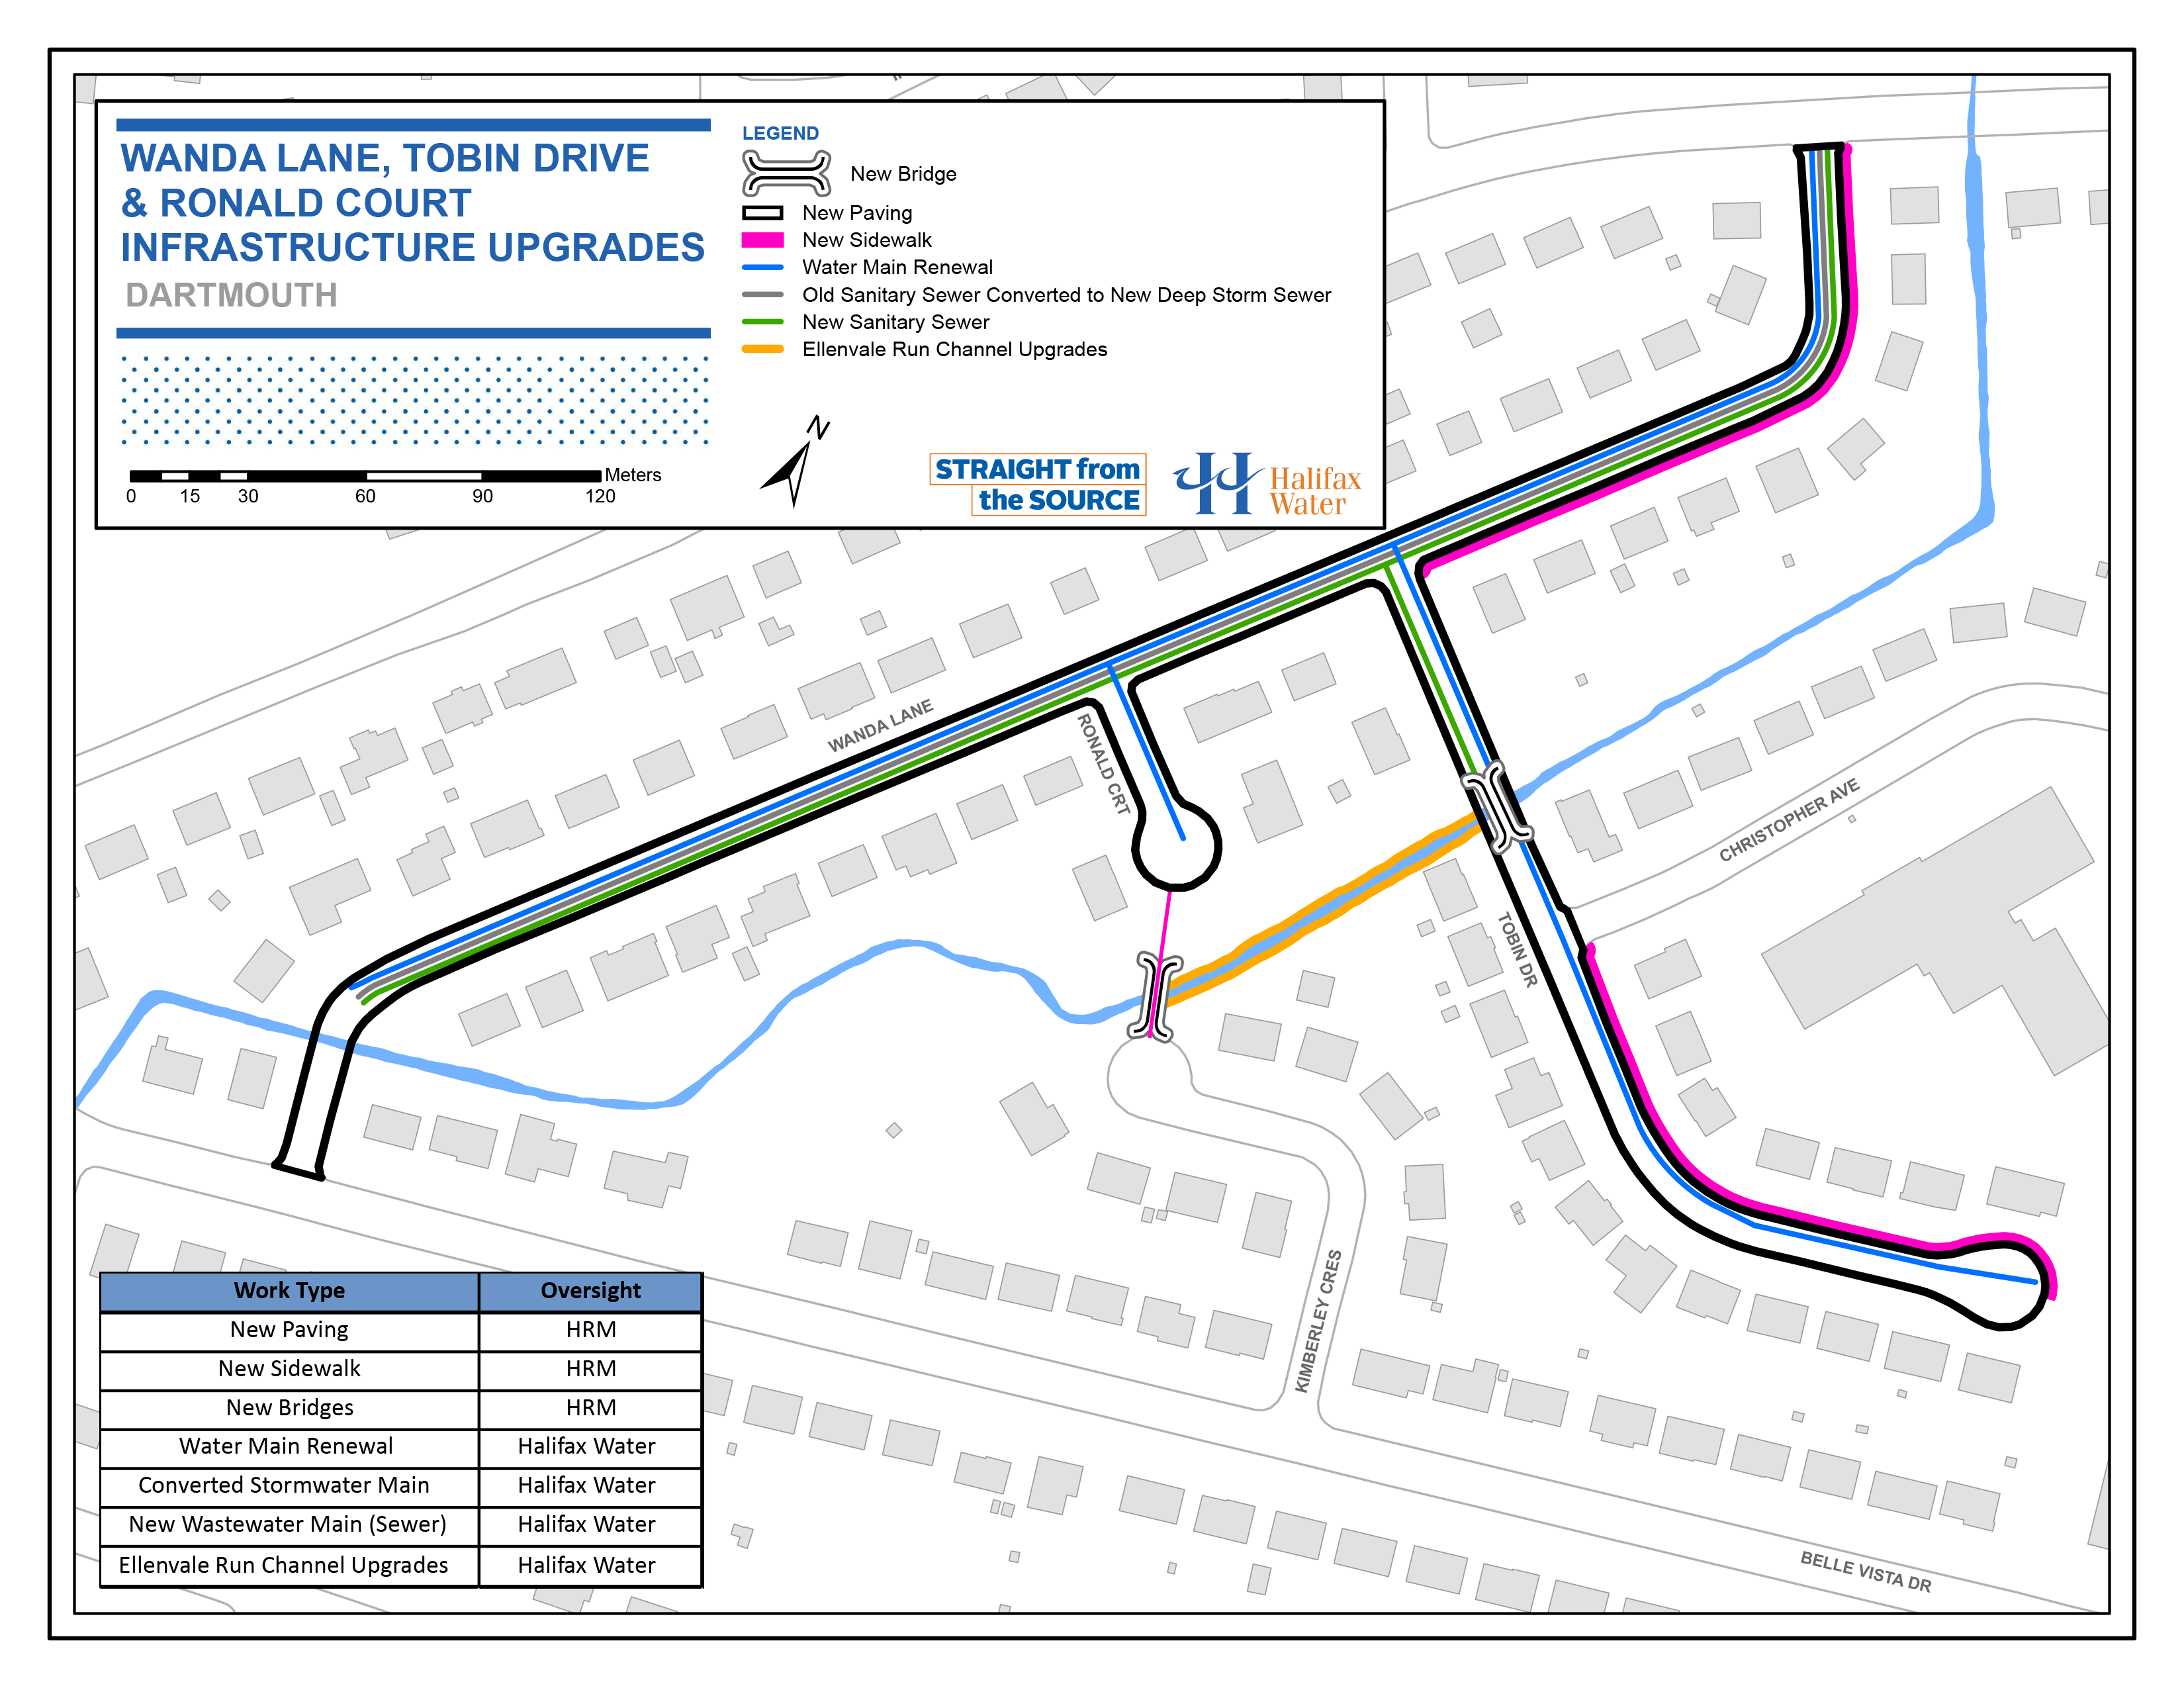 Wanda Lane, Tobin Drive, & Ronald Court Infrastructure Upgrade Map